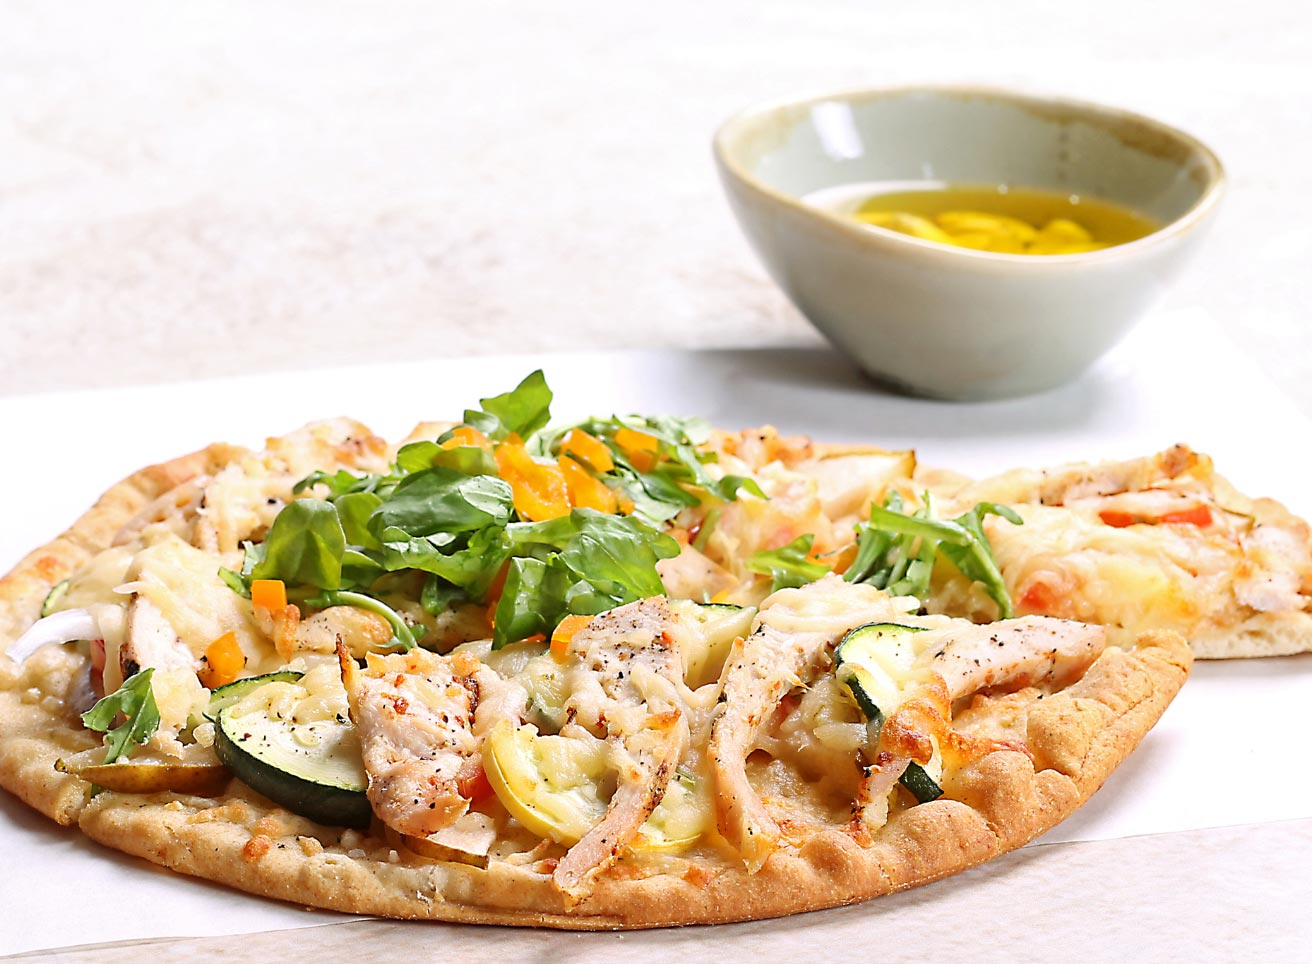 Grilled Chicken and Vegetables on a Flatbread